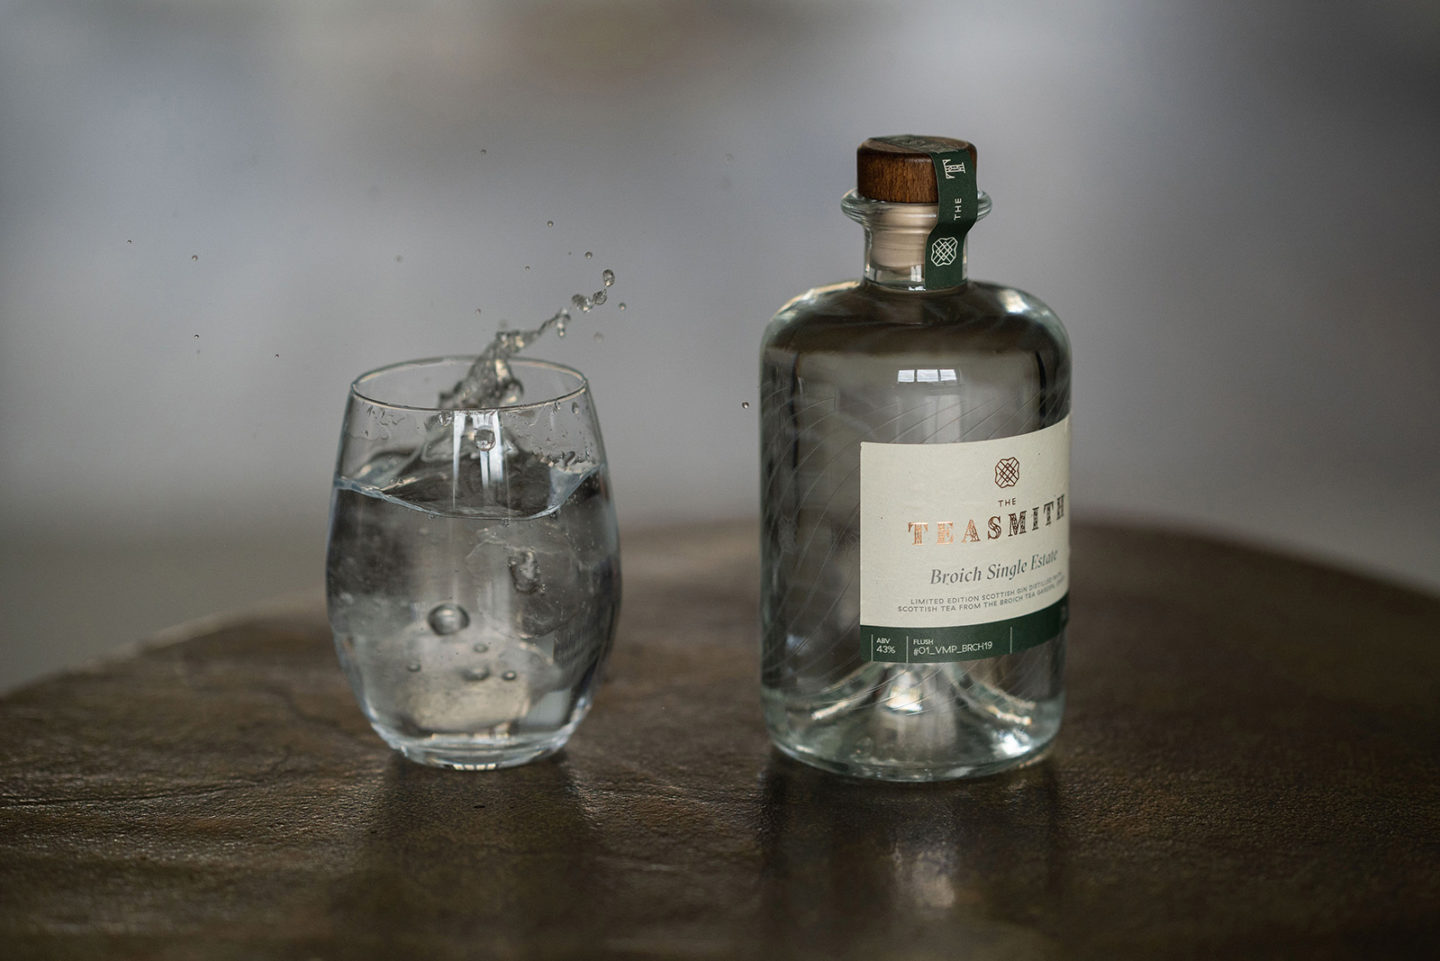 Teasmith Growers Edition Splash